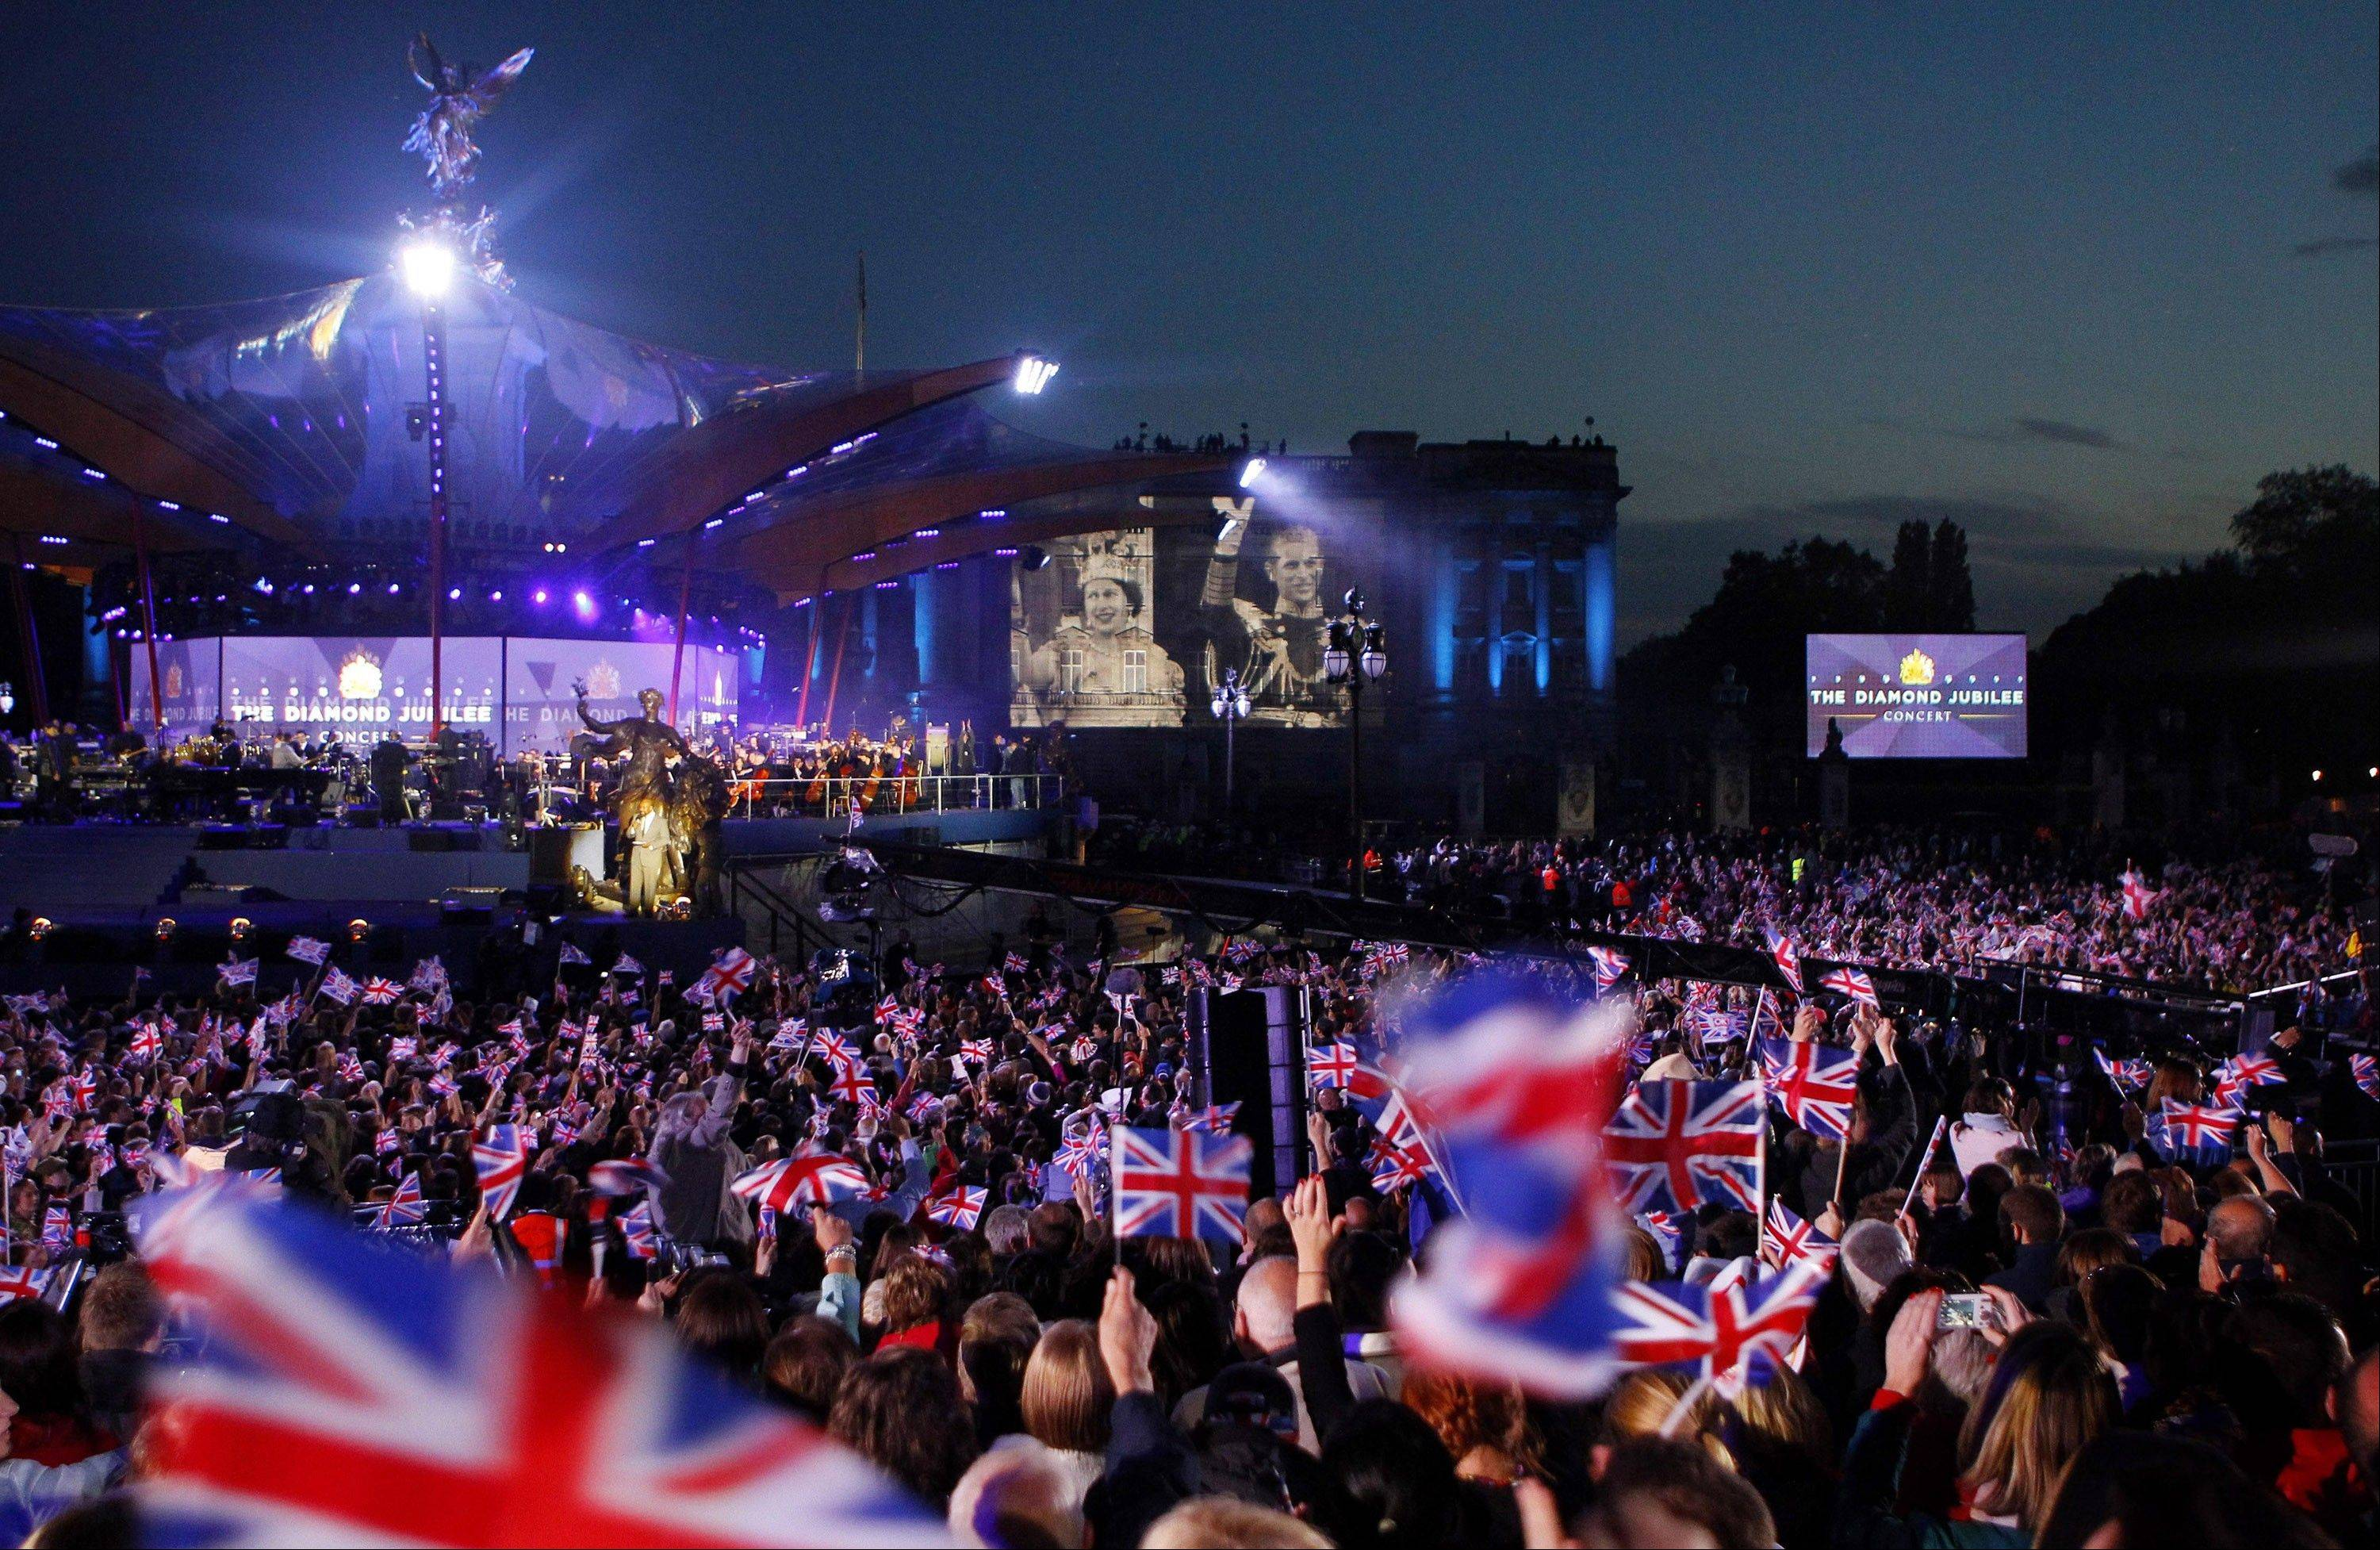 An image of Queen Elizabeth II and Duke of Edinburgh is projected onto Buckingham Palace during the Diamond Jubilee Concert in London Monday, June 4 , 2012.